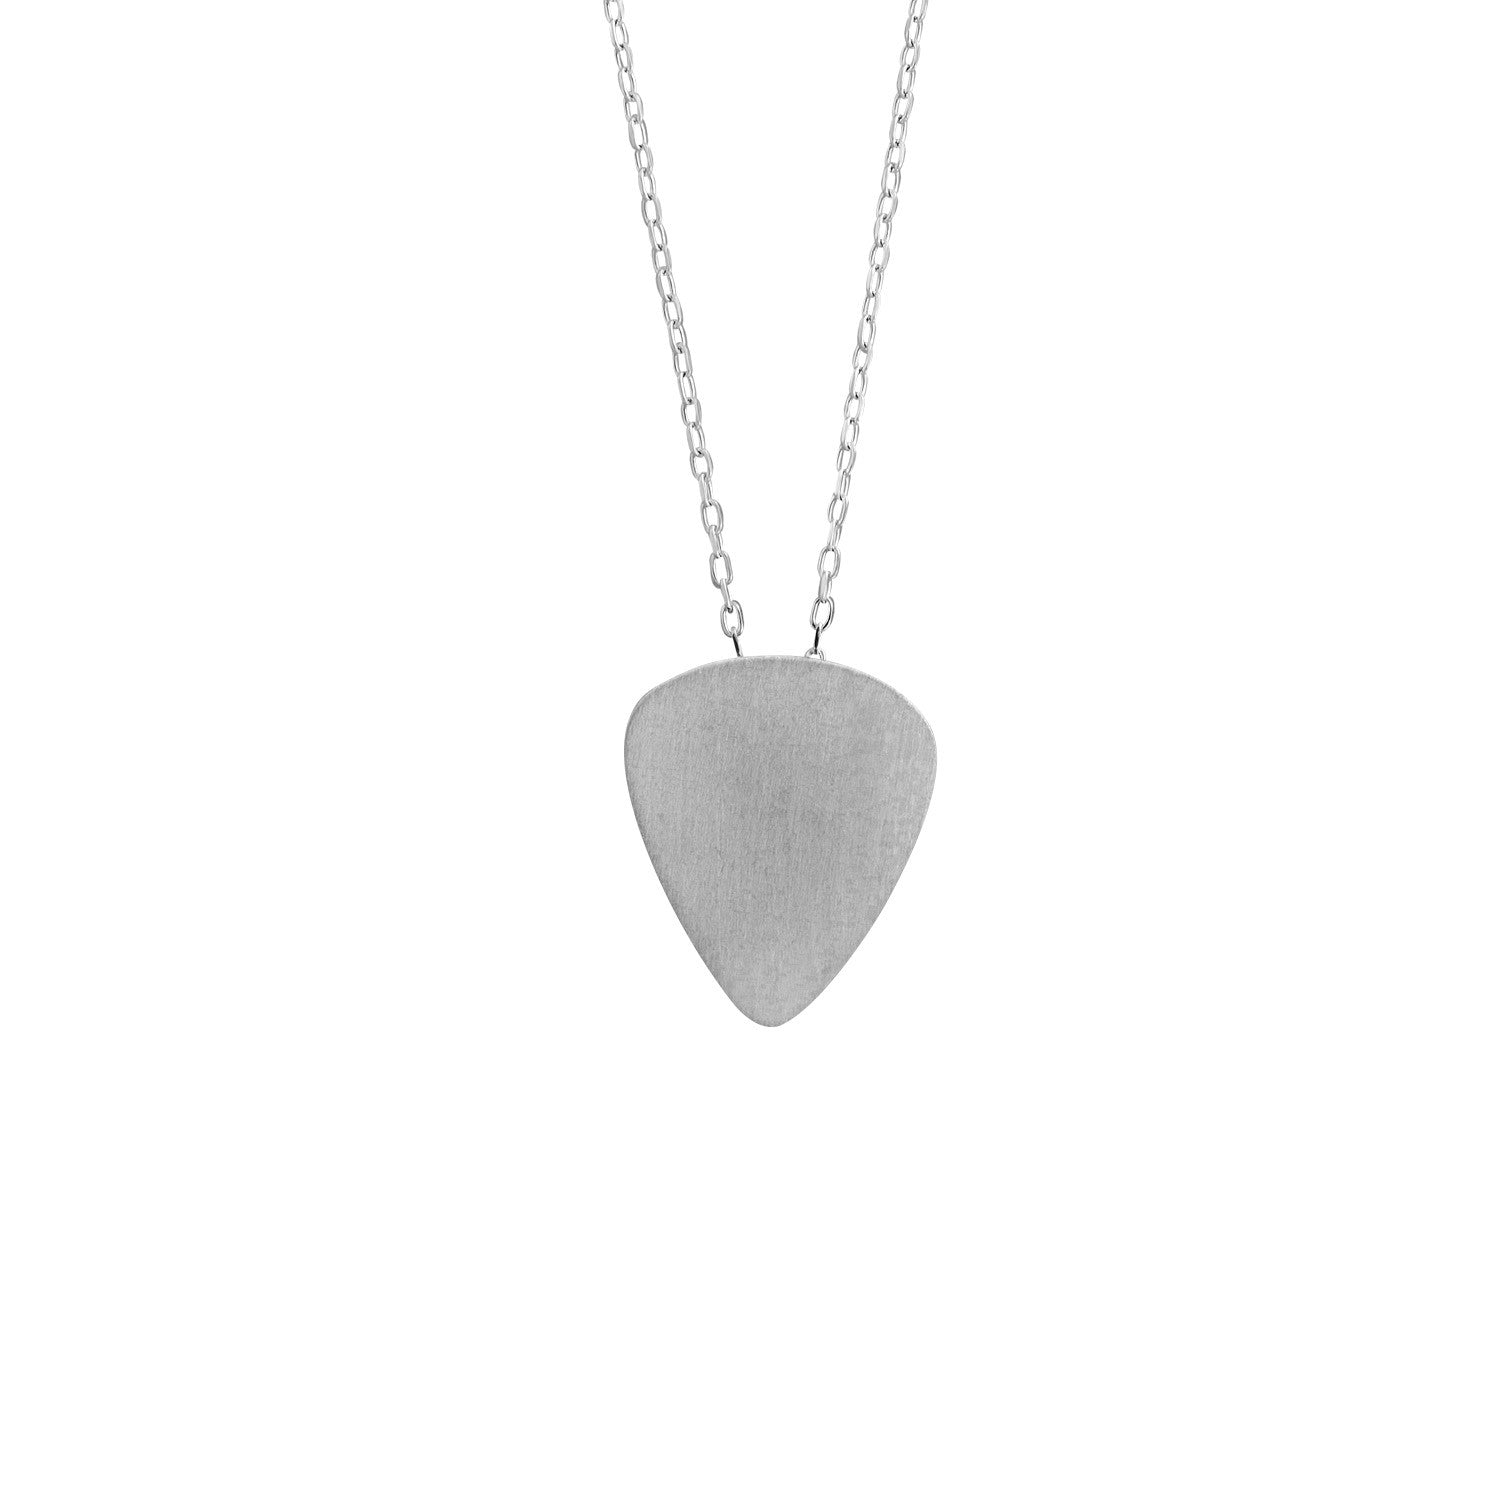 Edge Only Plectrum Pendant in Sterling Silver